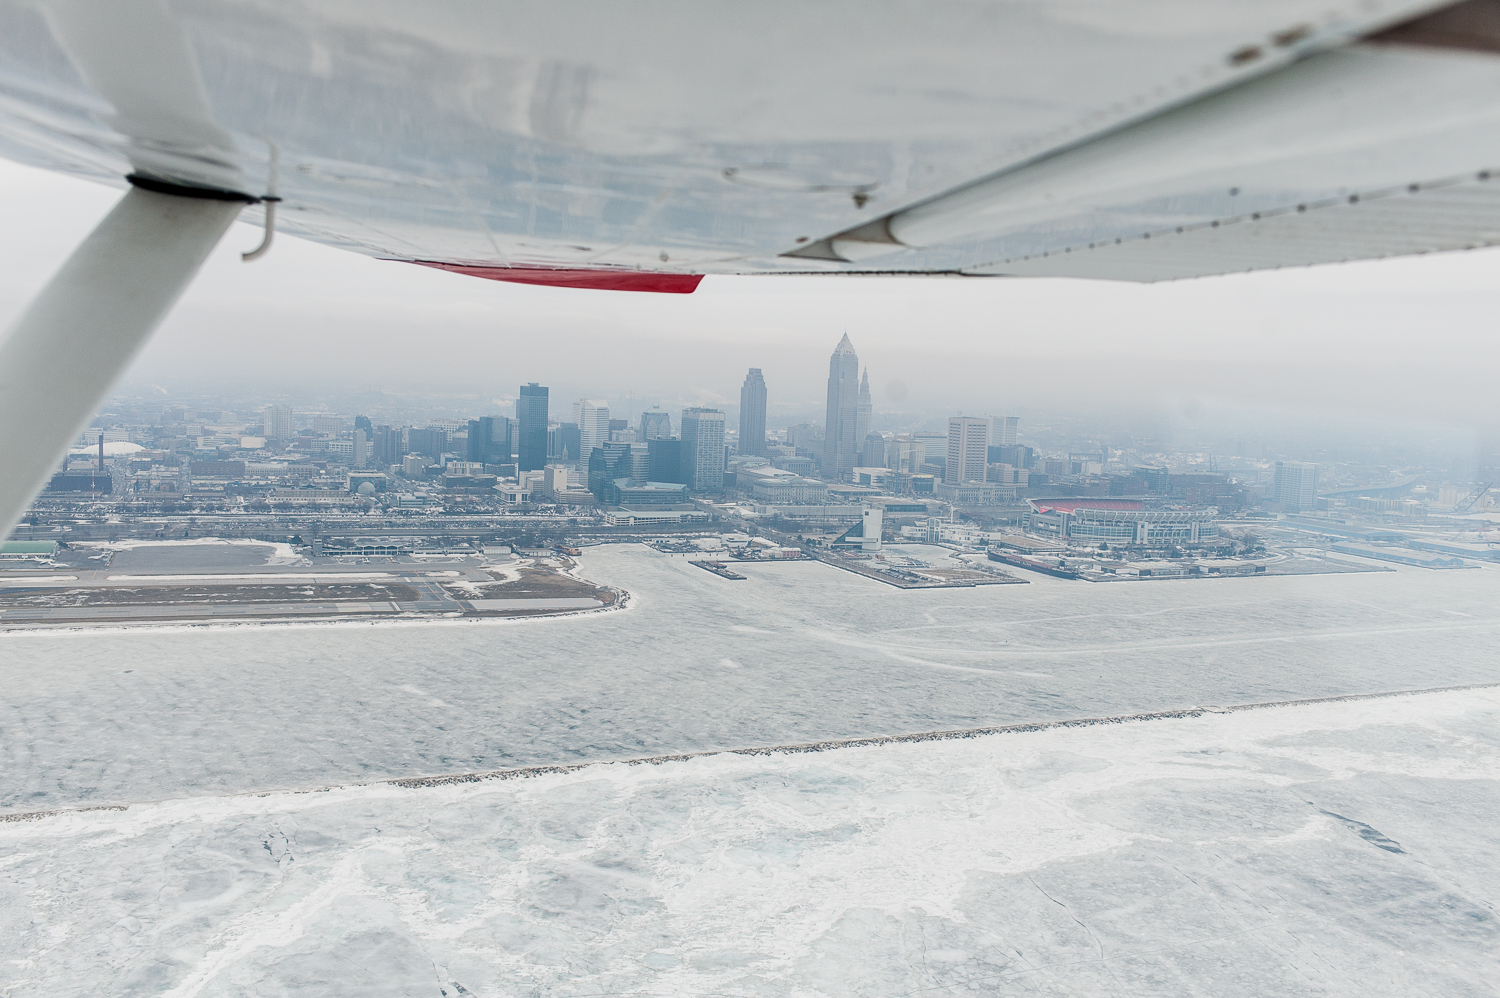 Flying by thevery cold and frozen city of Cleveland, Eastbound, heading for Burlington, Vermont, with a fuel stop along the way.